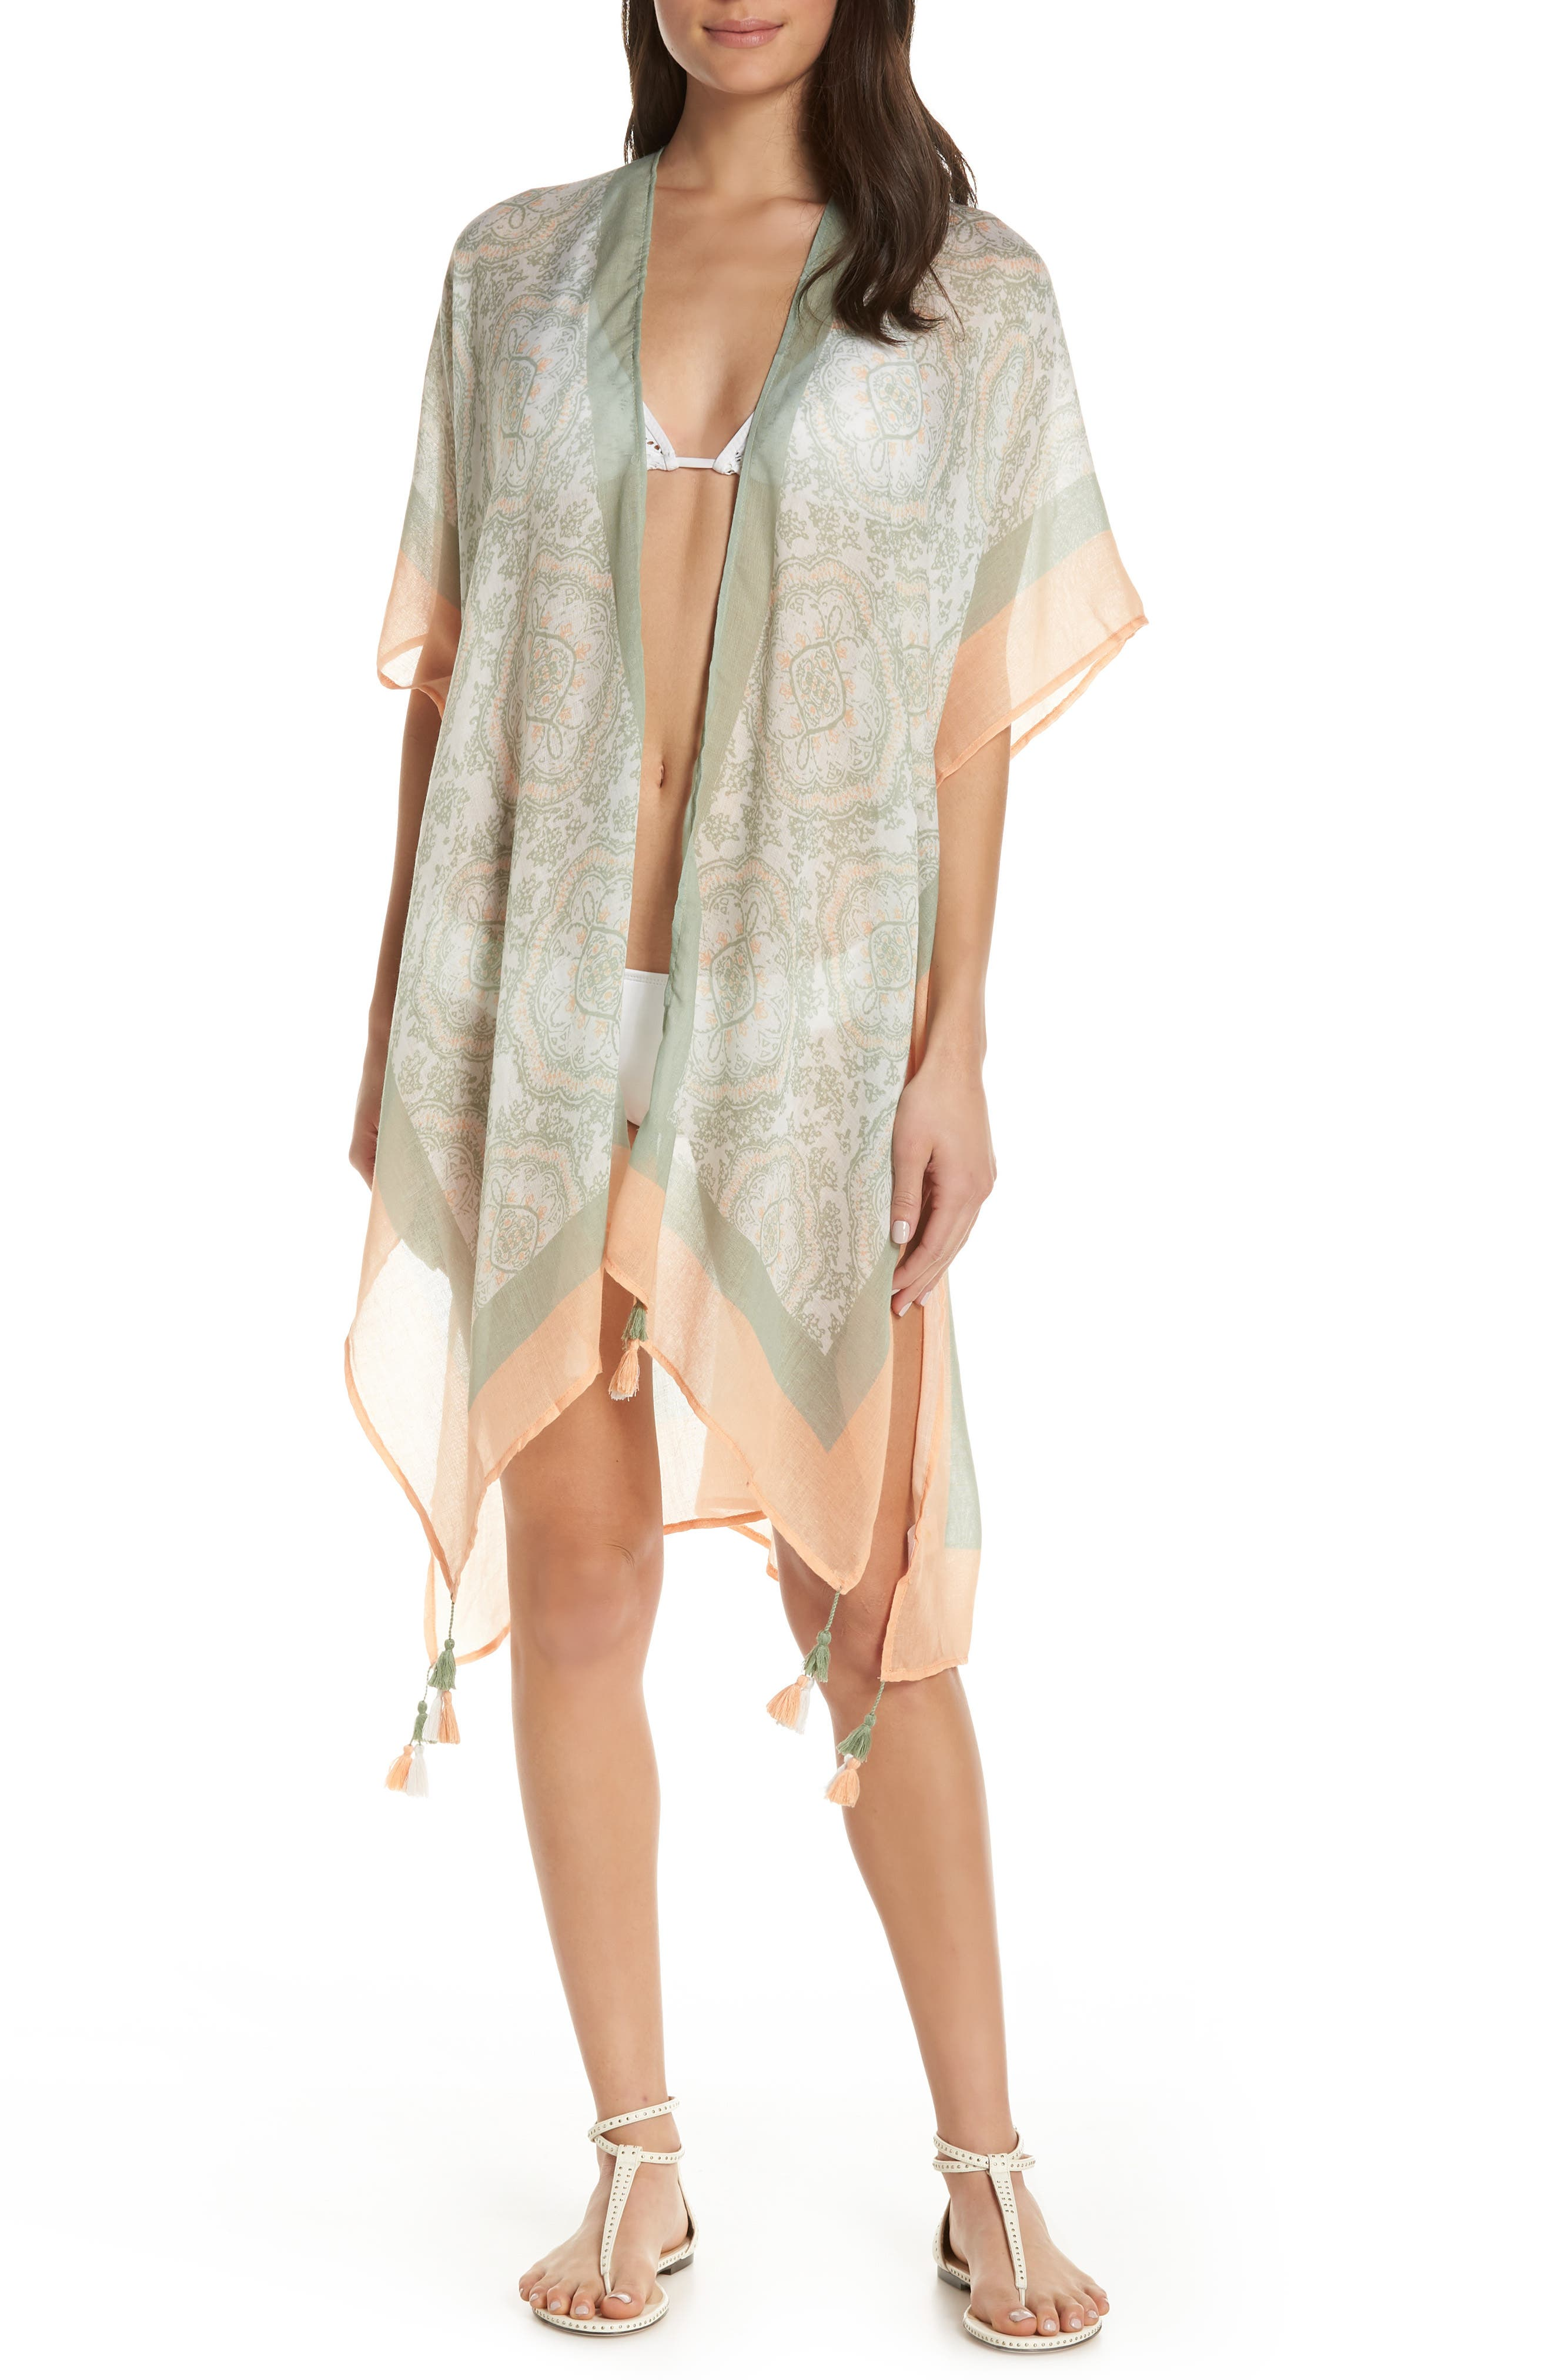 SURF GYPSY Sorbet Vintage Baroque Cover-Up in Mint/ Peach